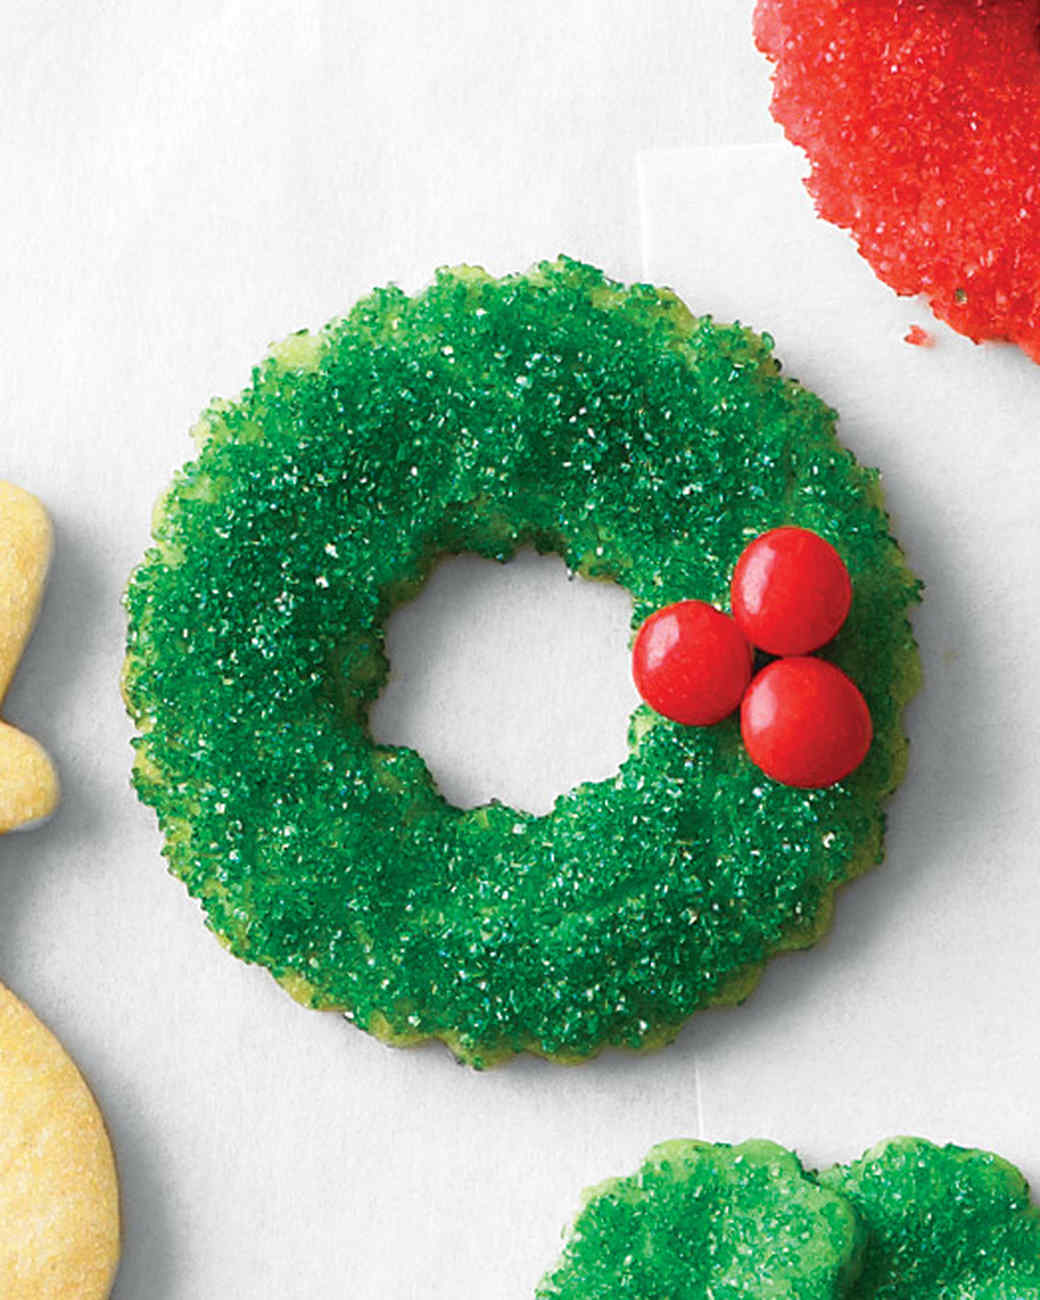 mld106463_1210_cookie_sugarwreath.jpg